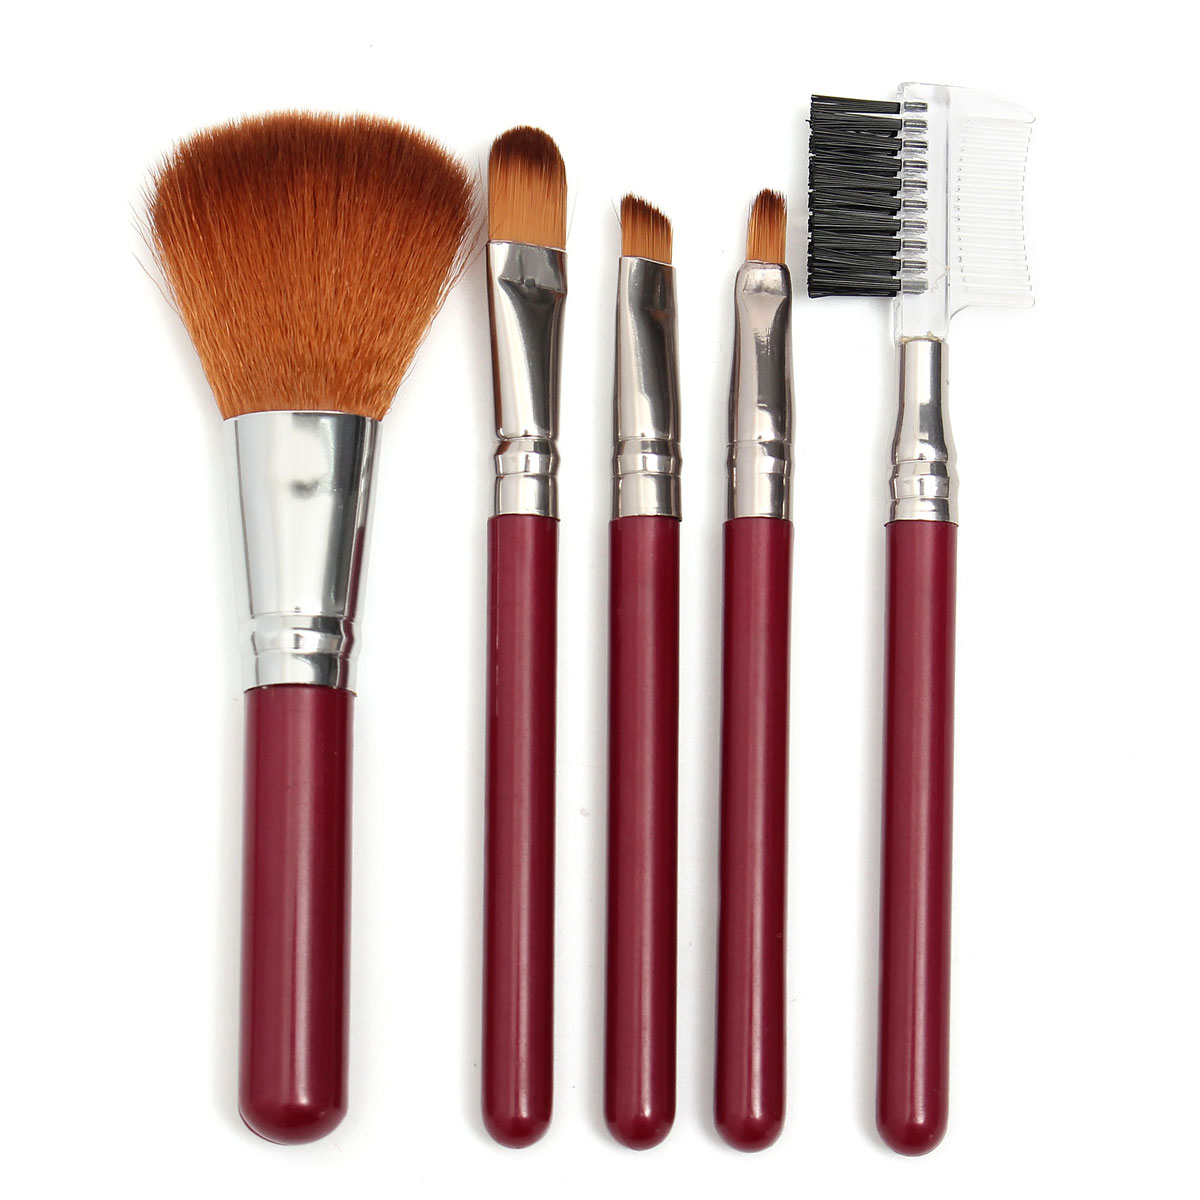 5pcs Makeup Brushes Kit Set Eyeshadow Blush Eyebrow Lip Cosmetic Tools Beauty